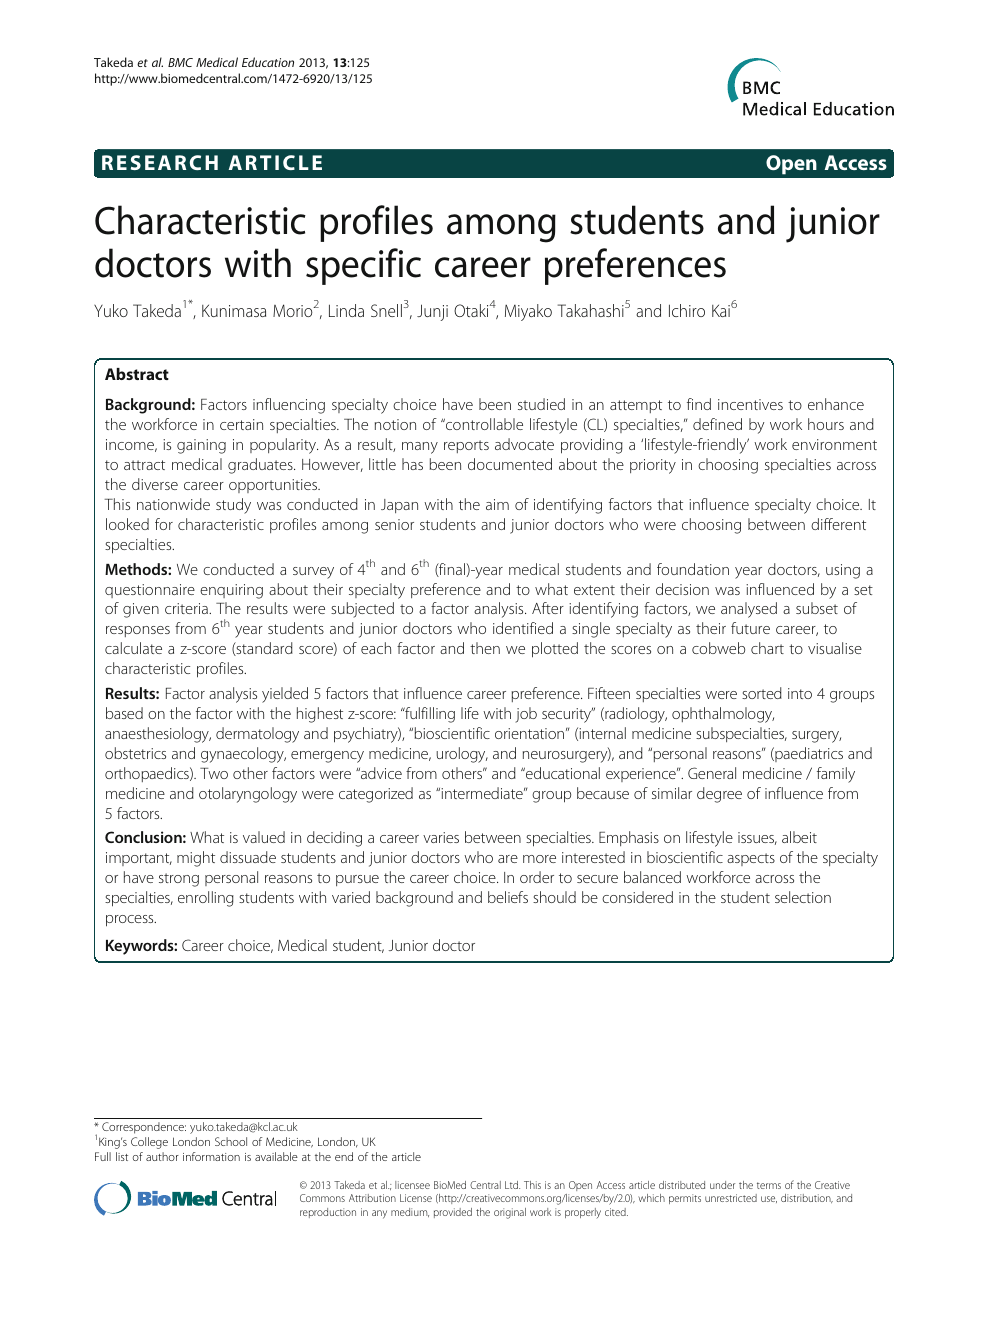 Medical Careers List >> Characteristic Profiles Among Students And Junior Doctors